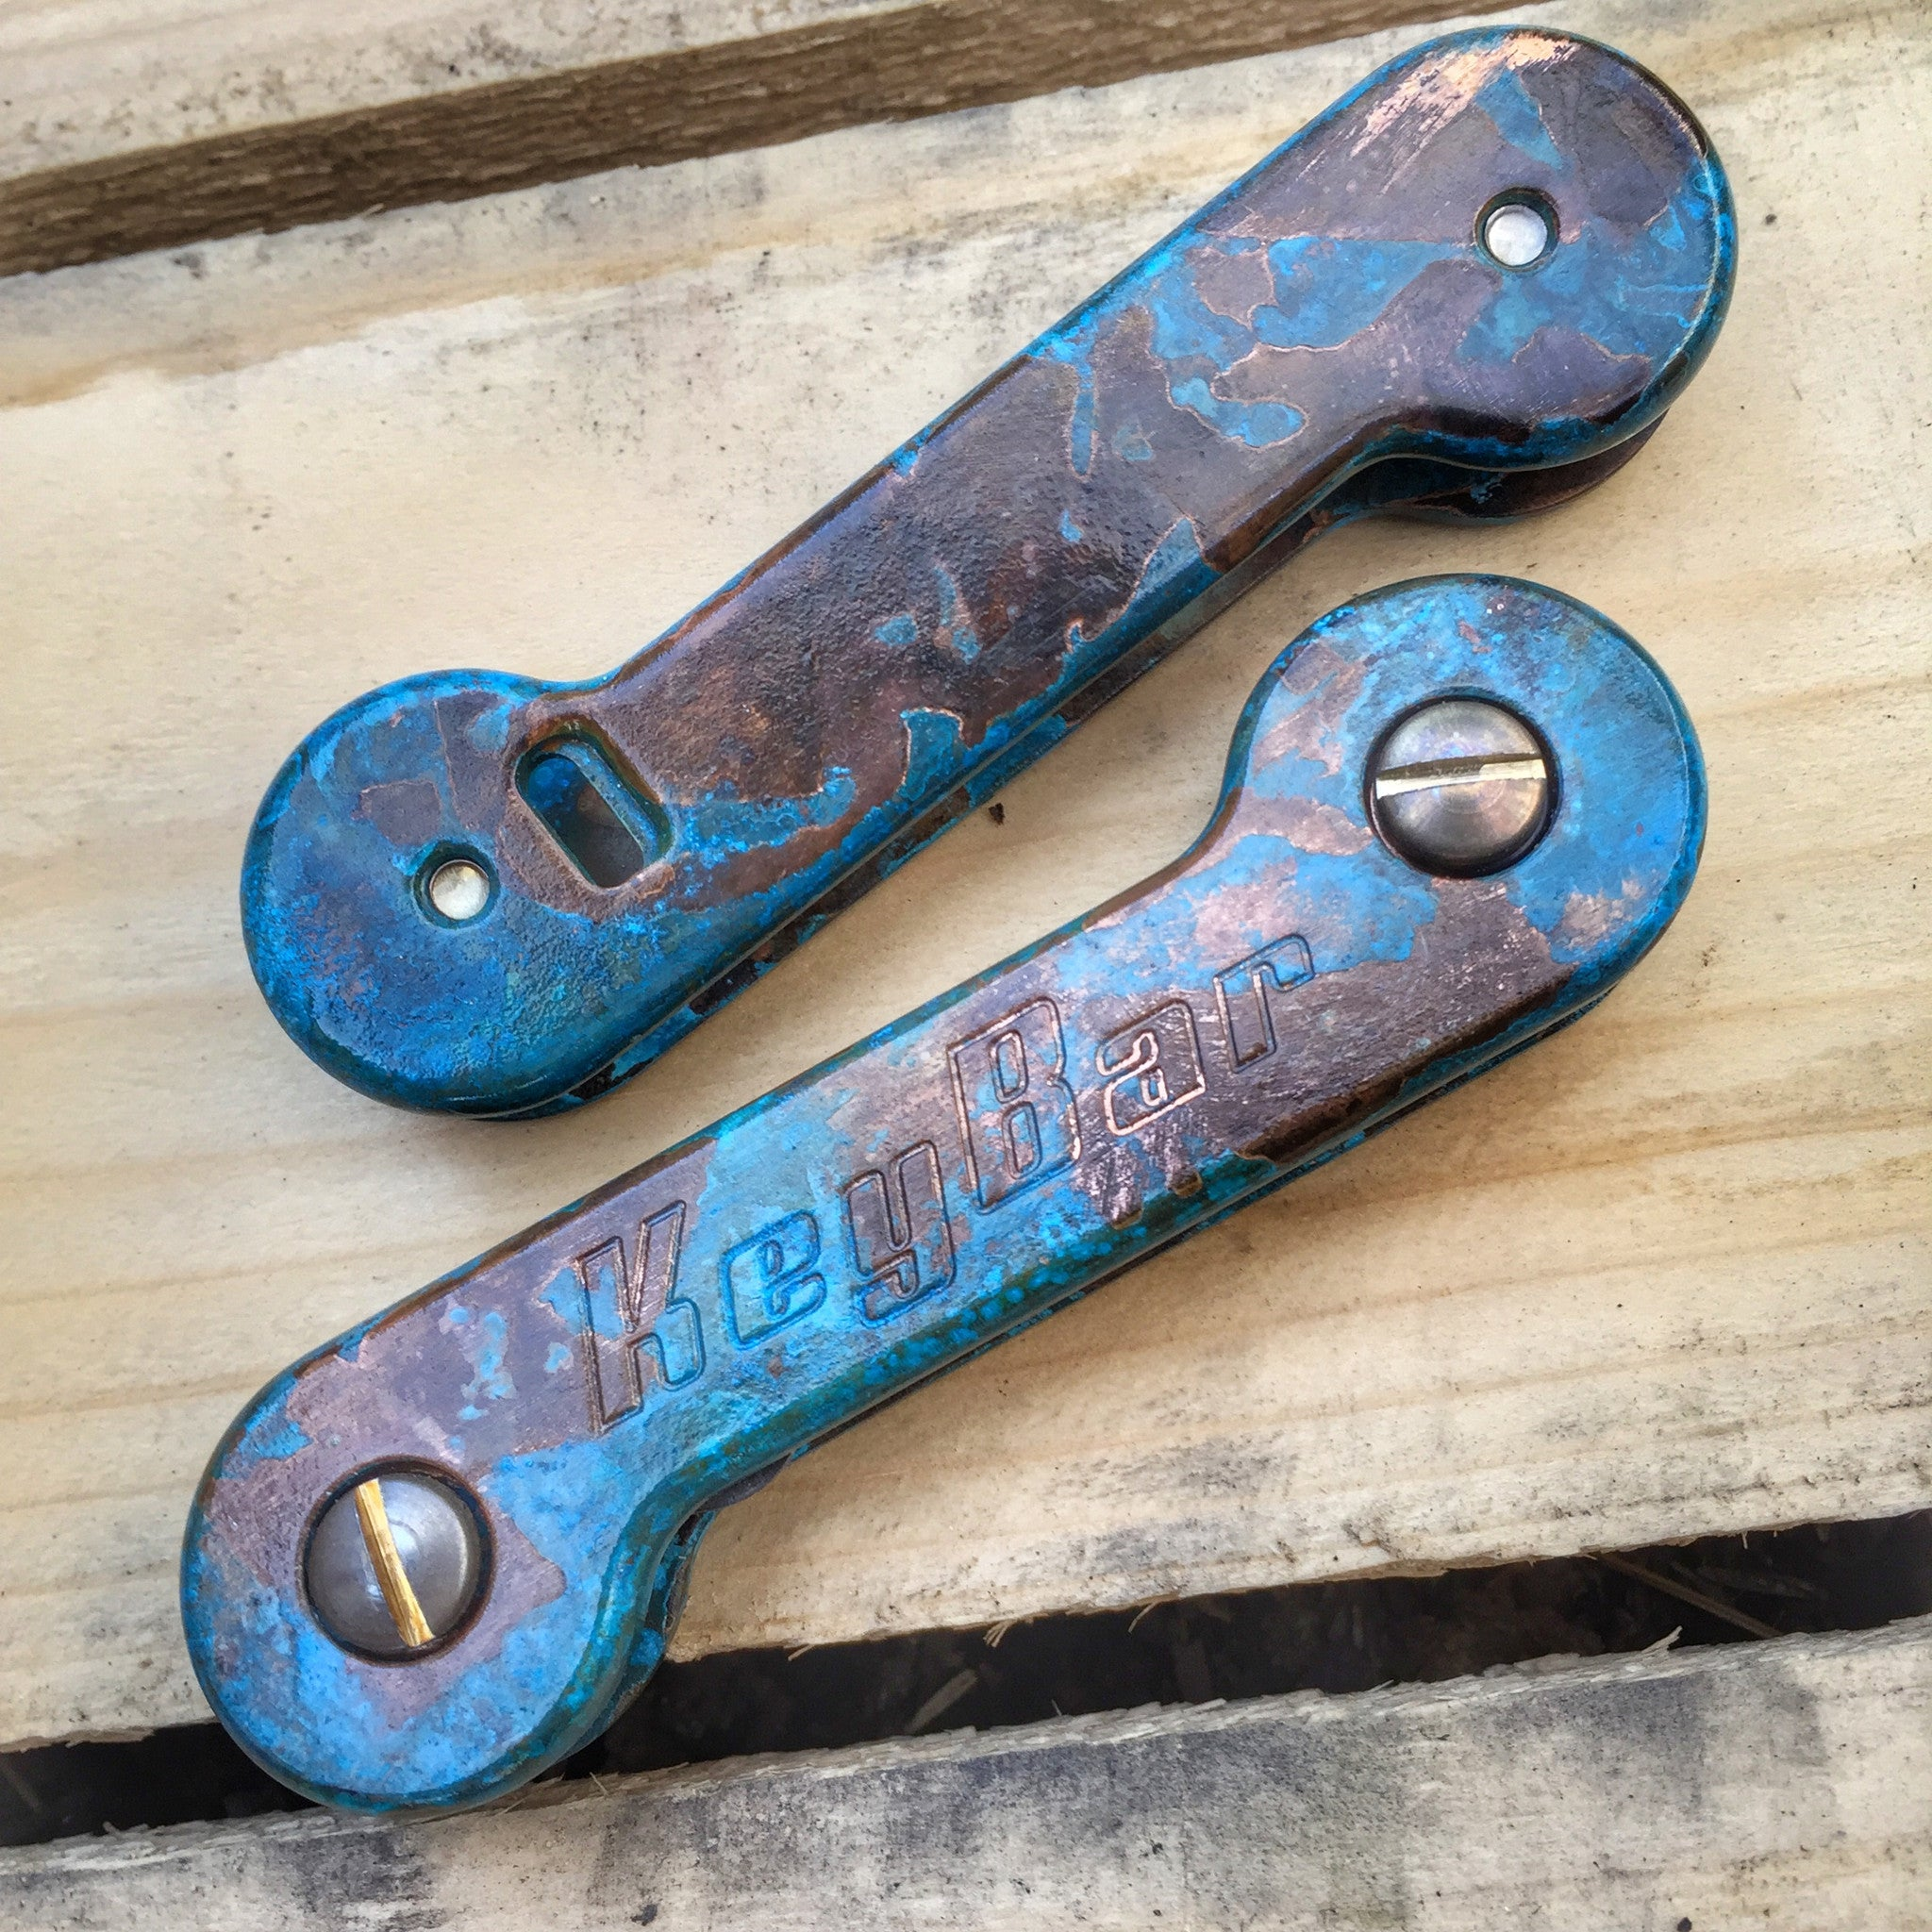 Custom Keybars - Limited Edition Cerakote/Patina's Etc.